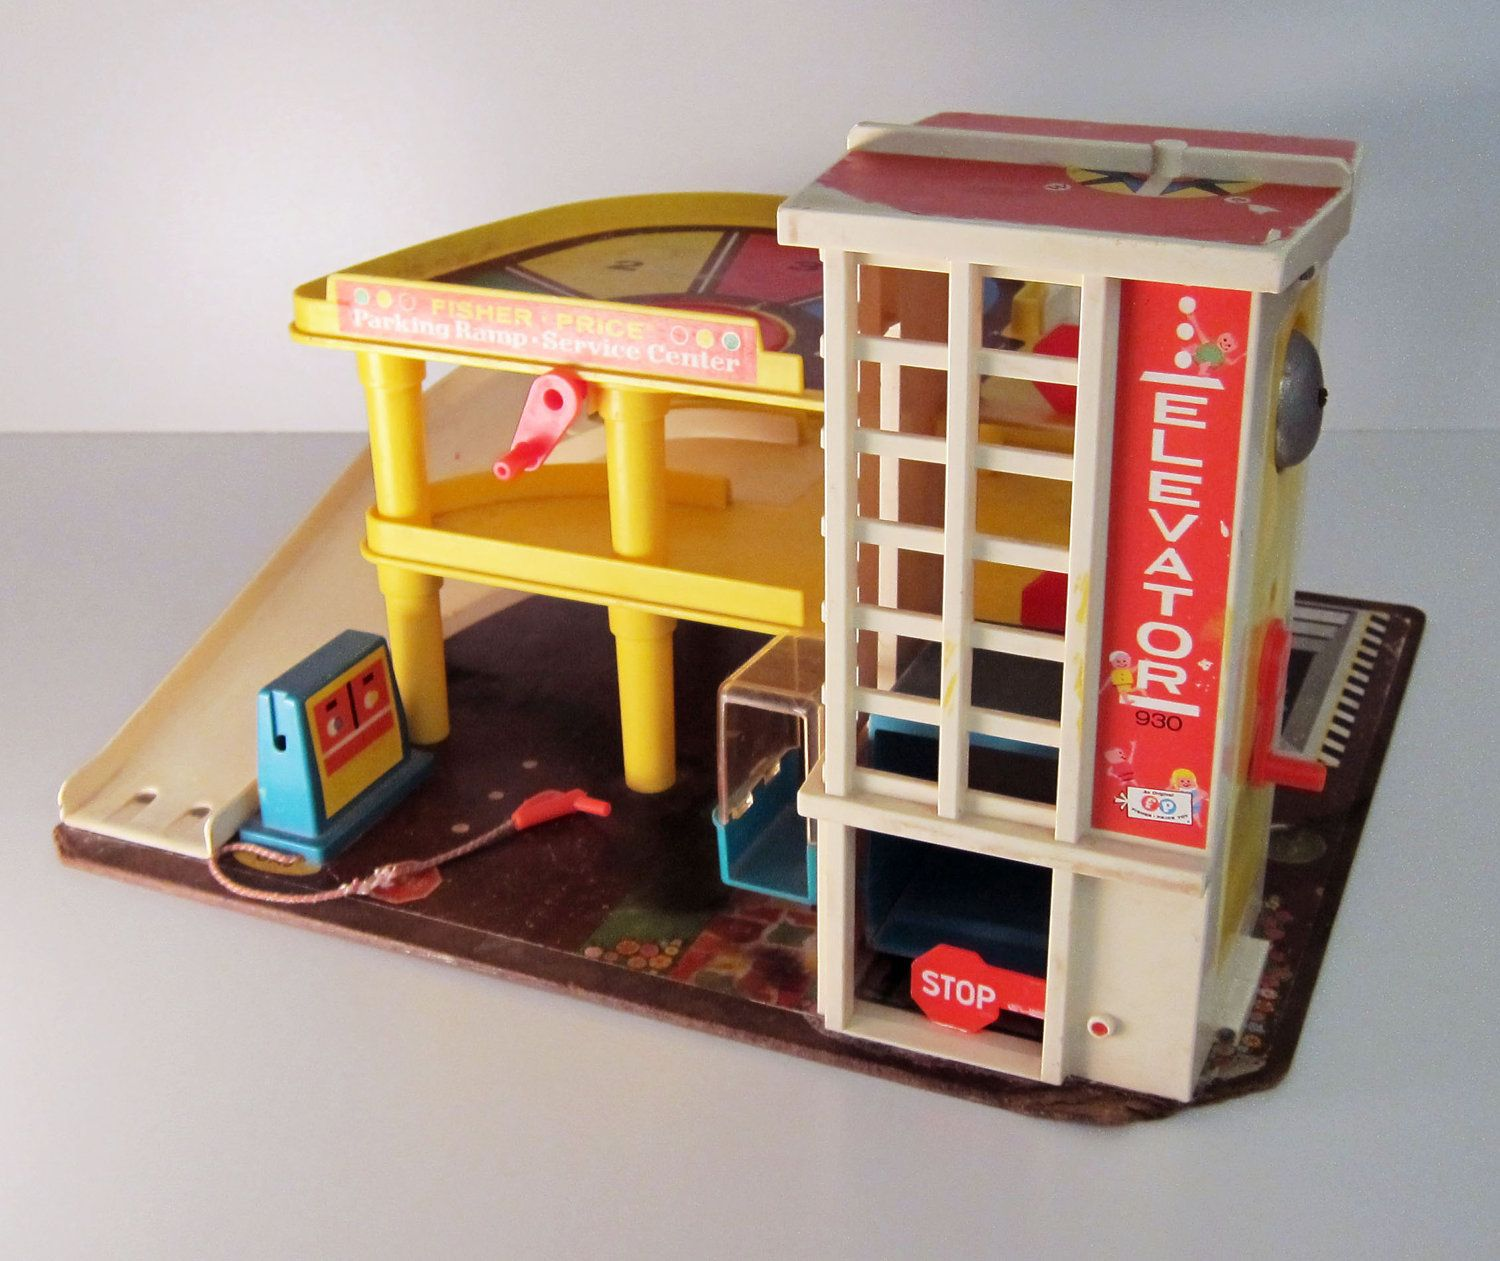 Fisher price garage toy vintage 1970 toy See more ideas